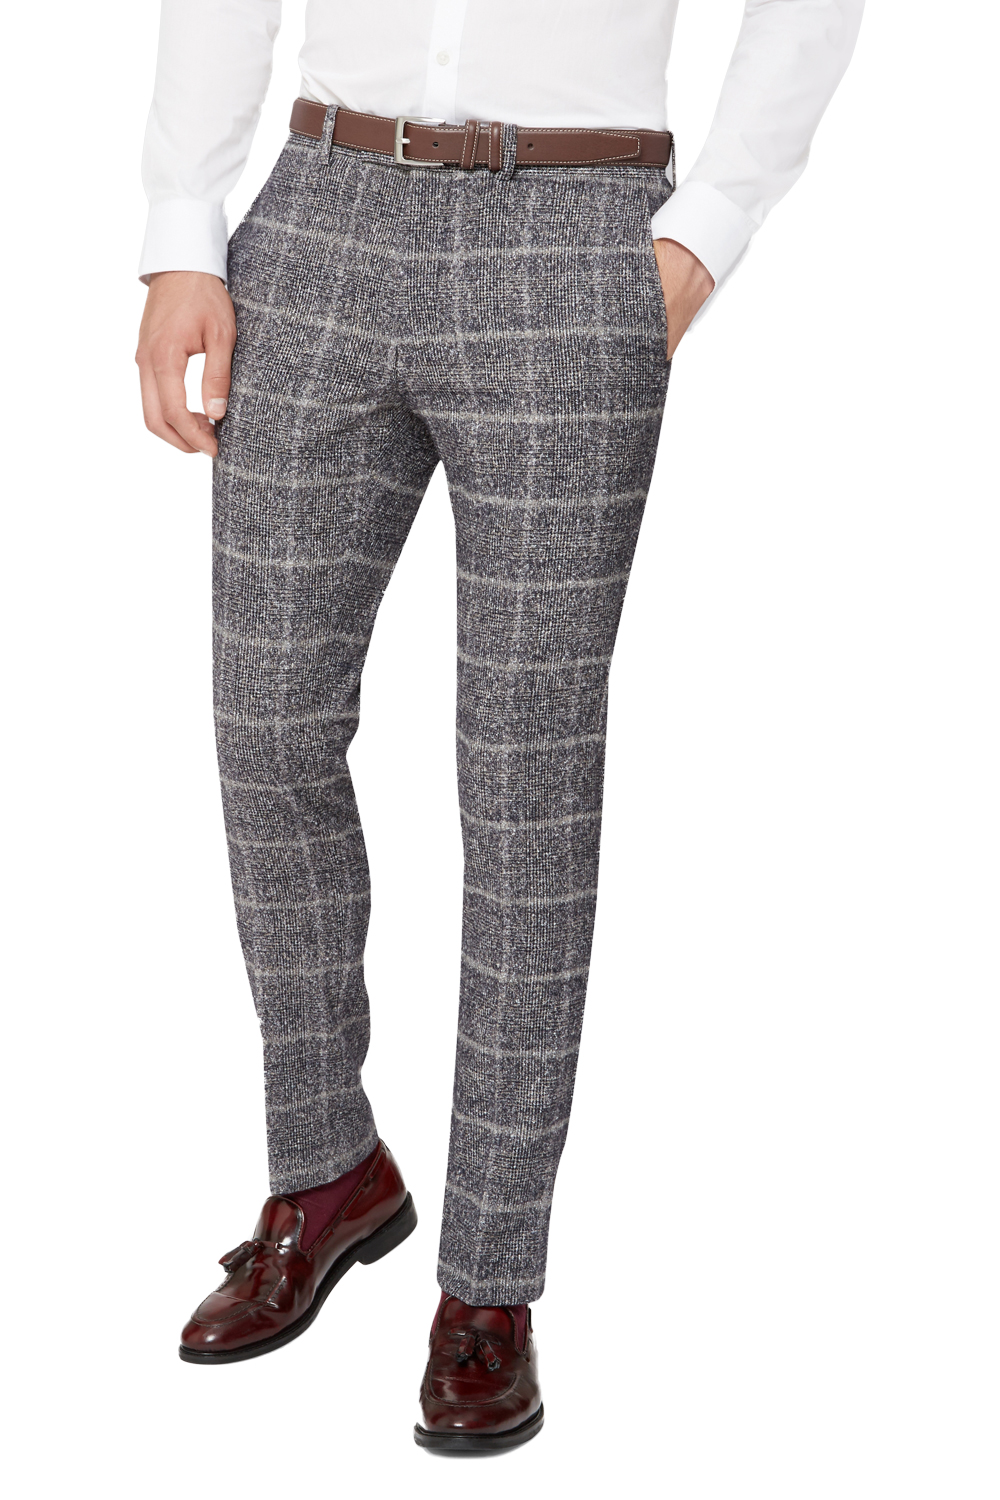 moss london mens grey suit trousers skinny fit speckled